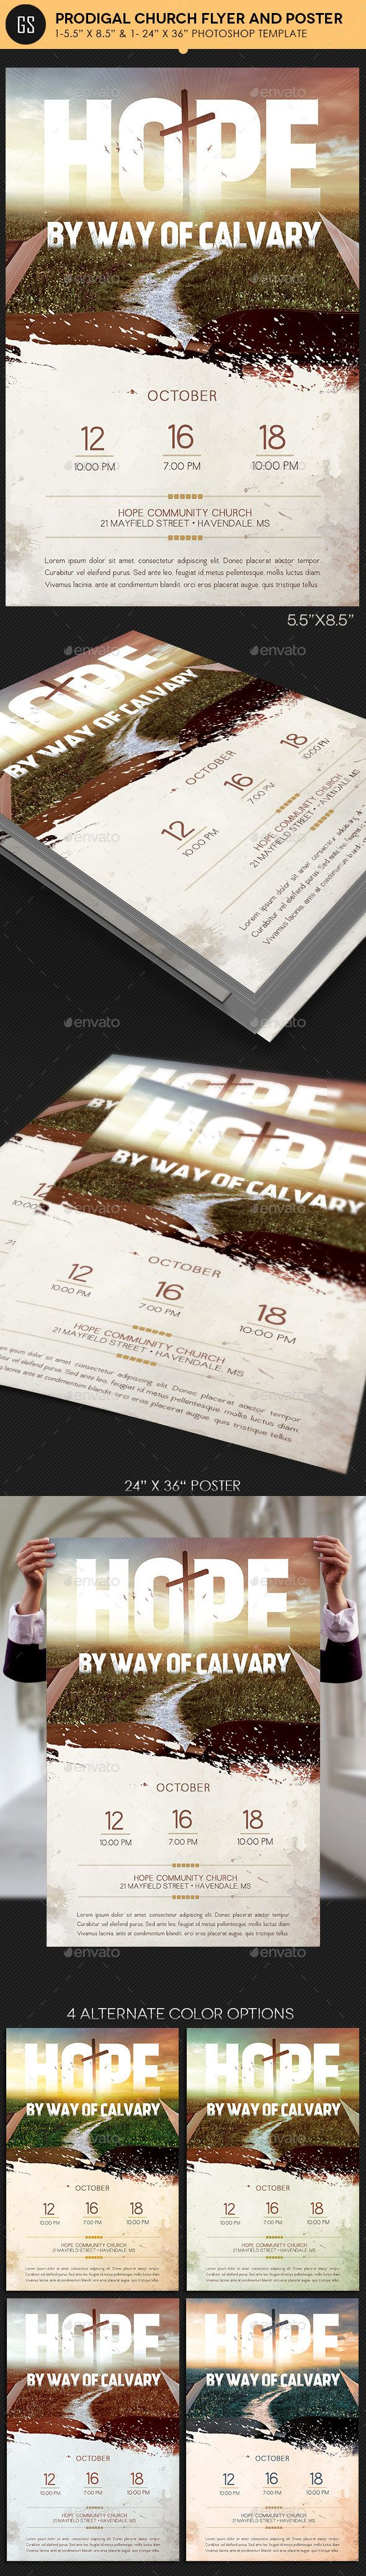 Hope Church Flyer Poster Template